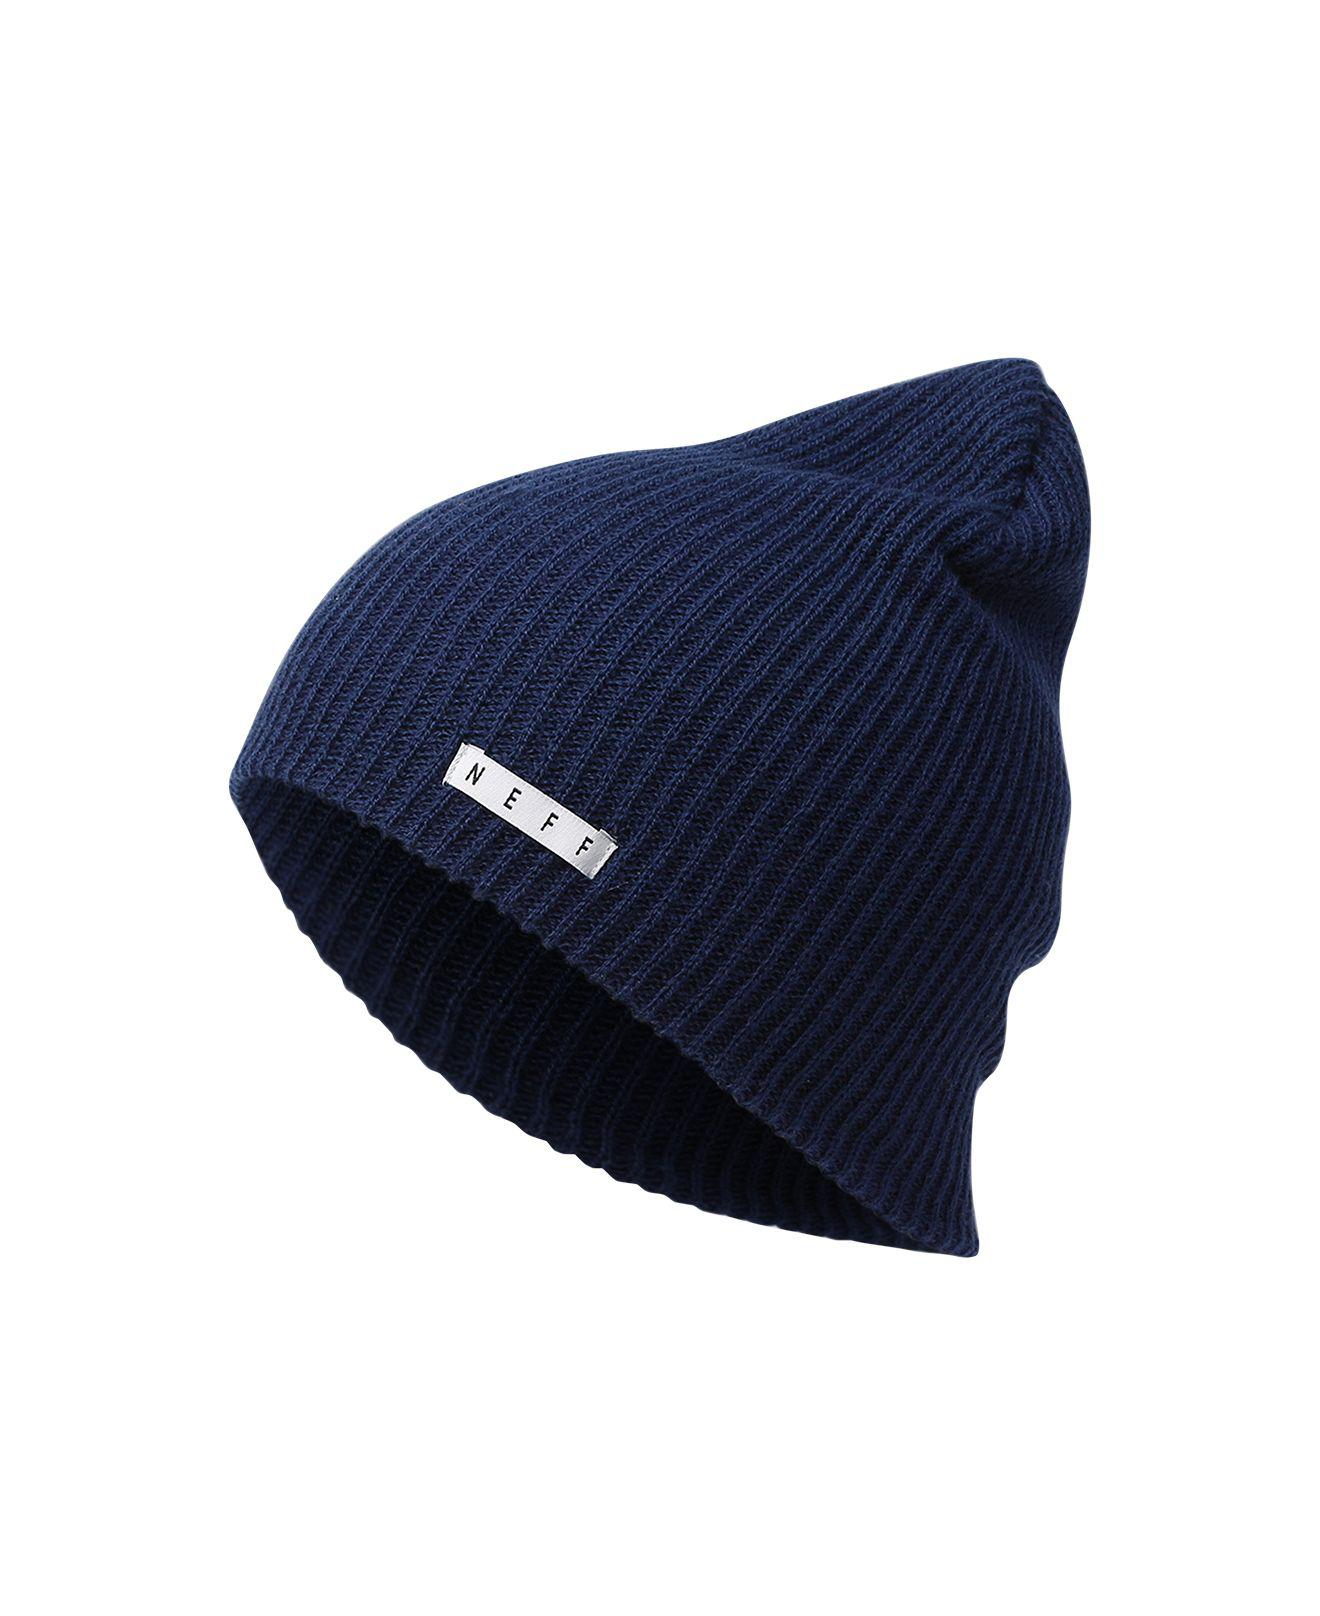 af7d646f0d5 Lyst - Neff Daily Solid Beanie in Blue for Men - Save 25%